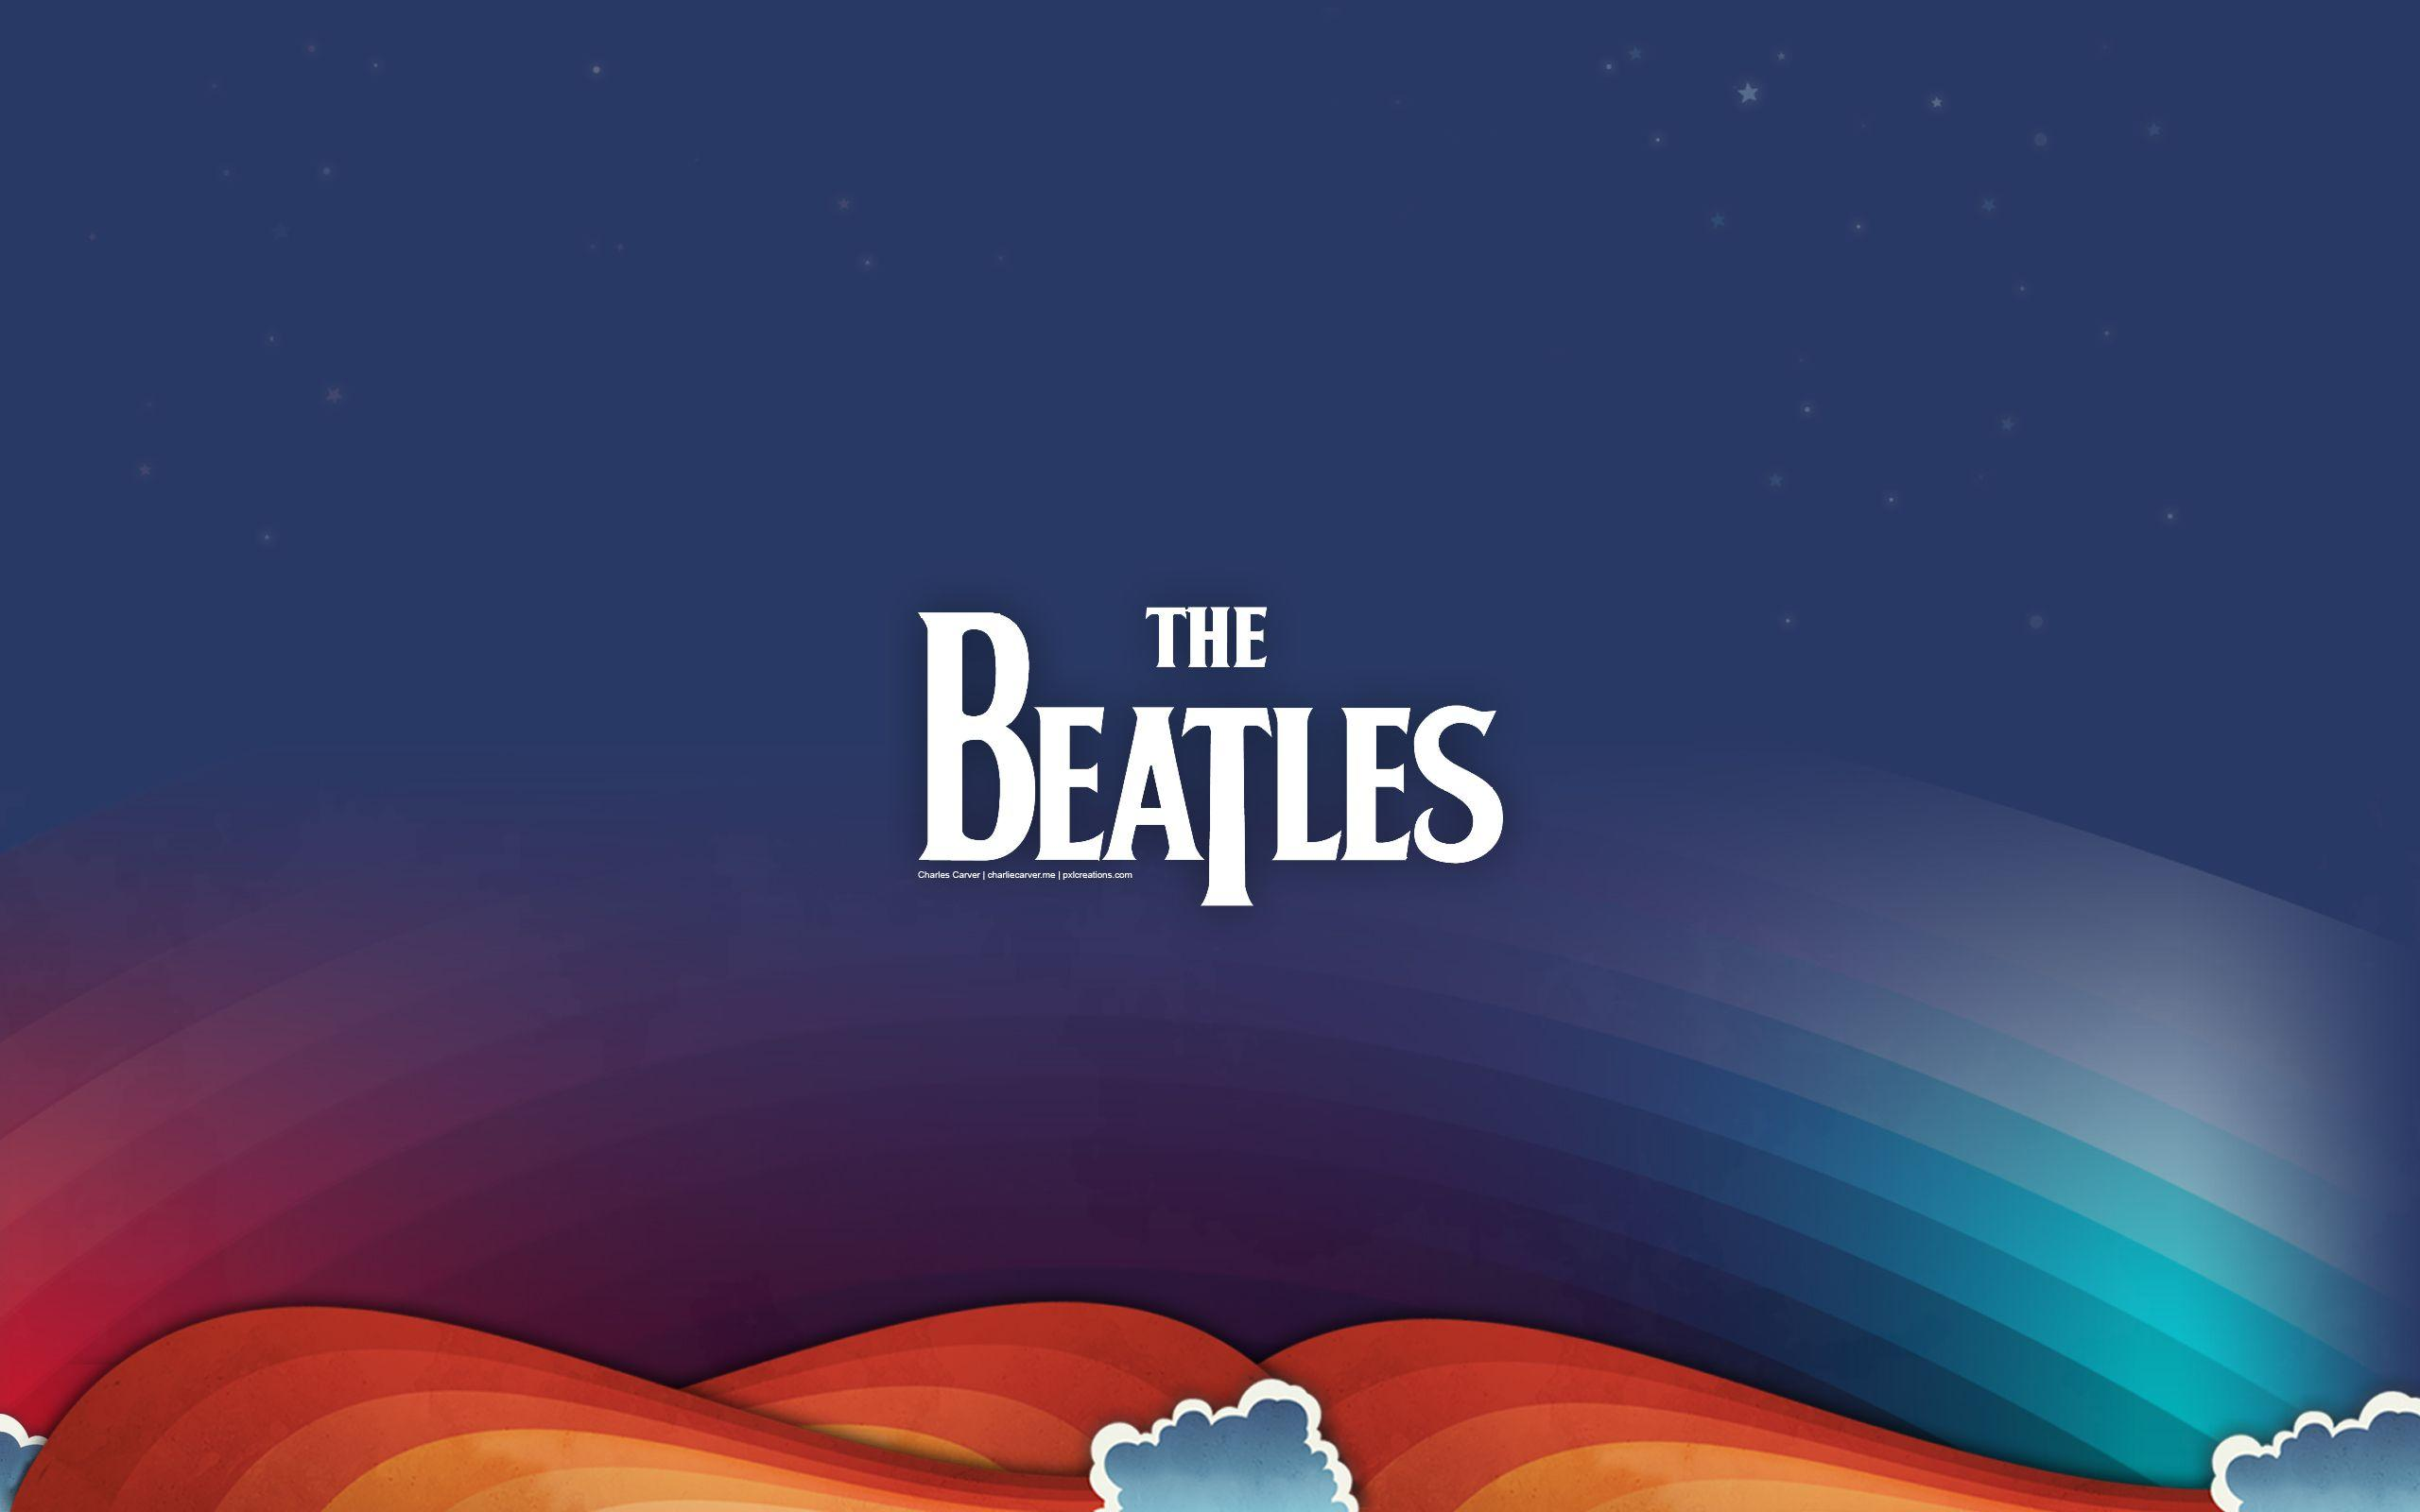 Wallpapers The Beatles, Rock band, Pop, Liverpool, Logo, Music,